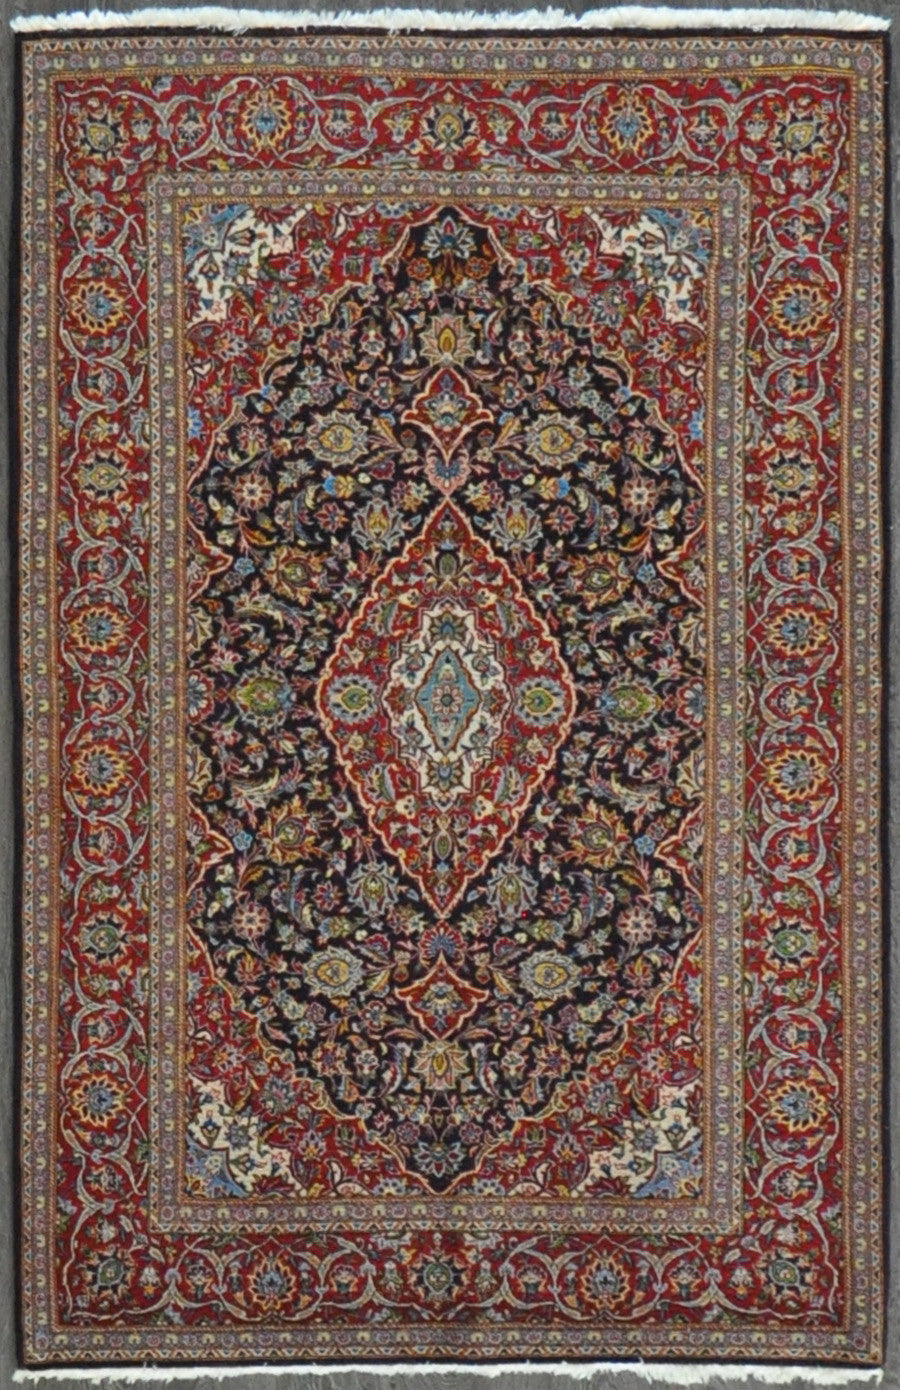 4.7x7.0 persian kashan #43401Sold